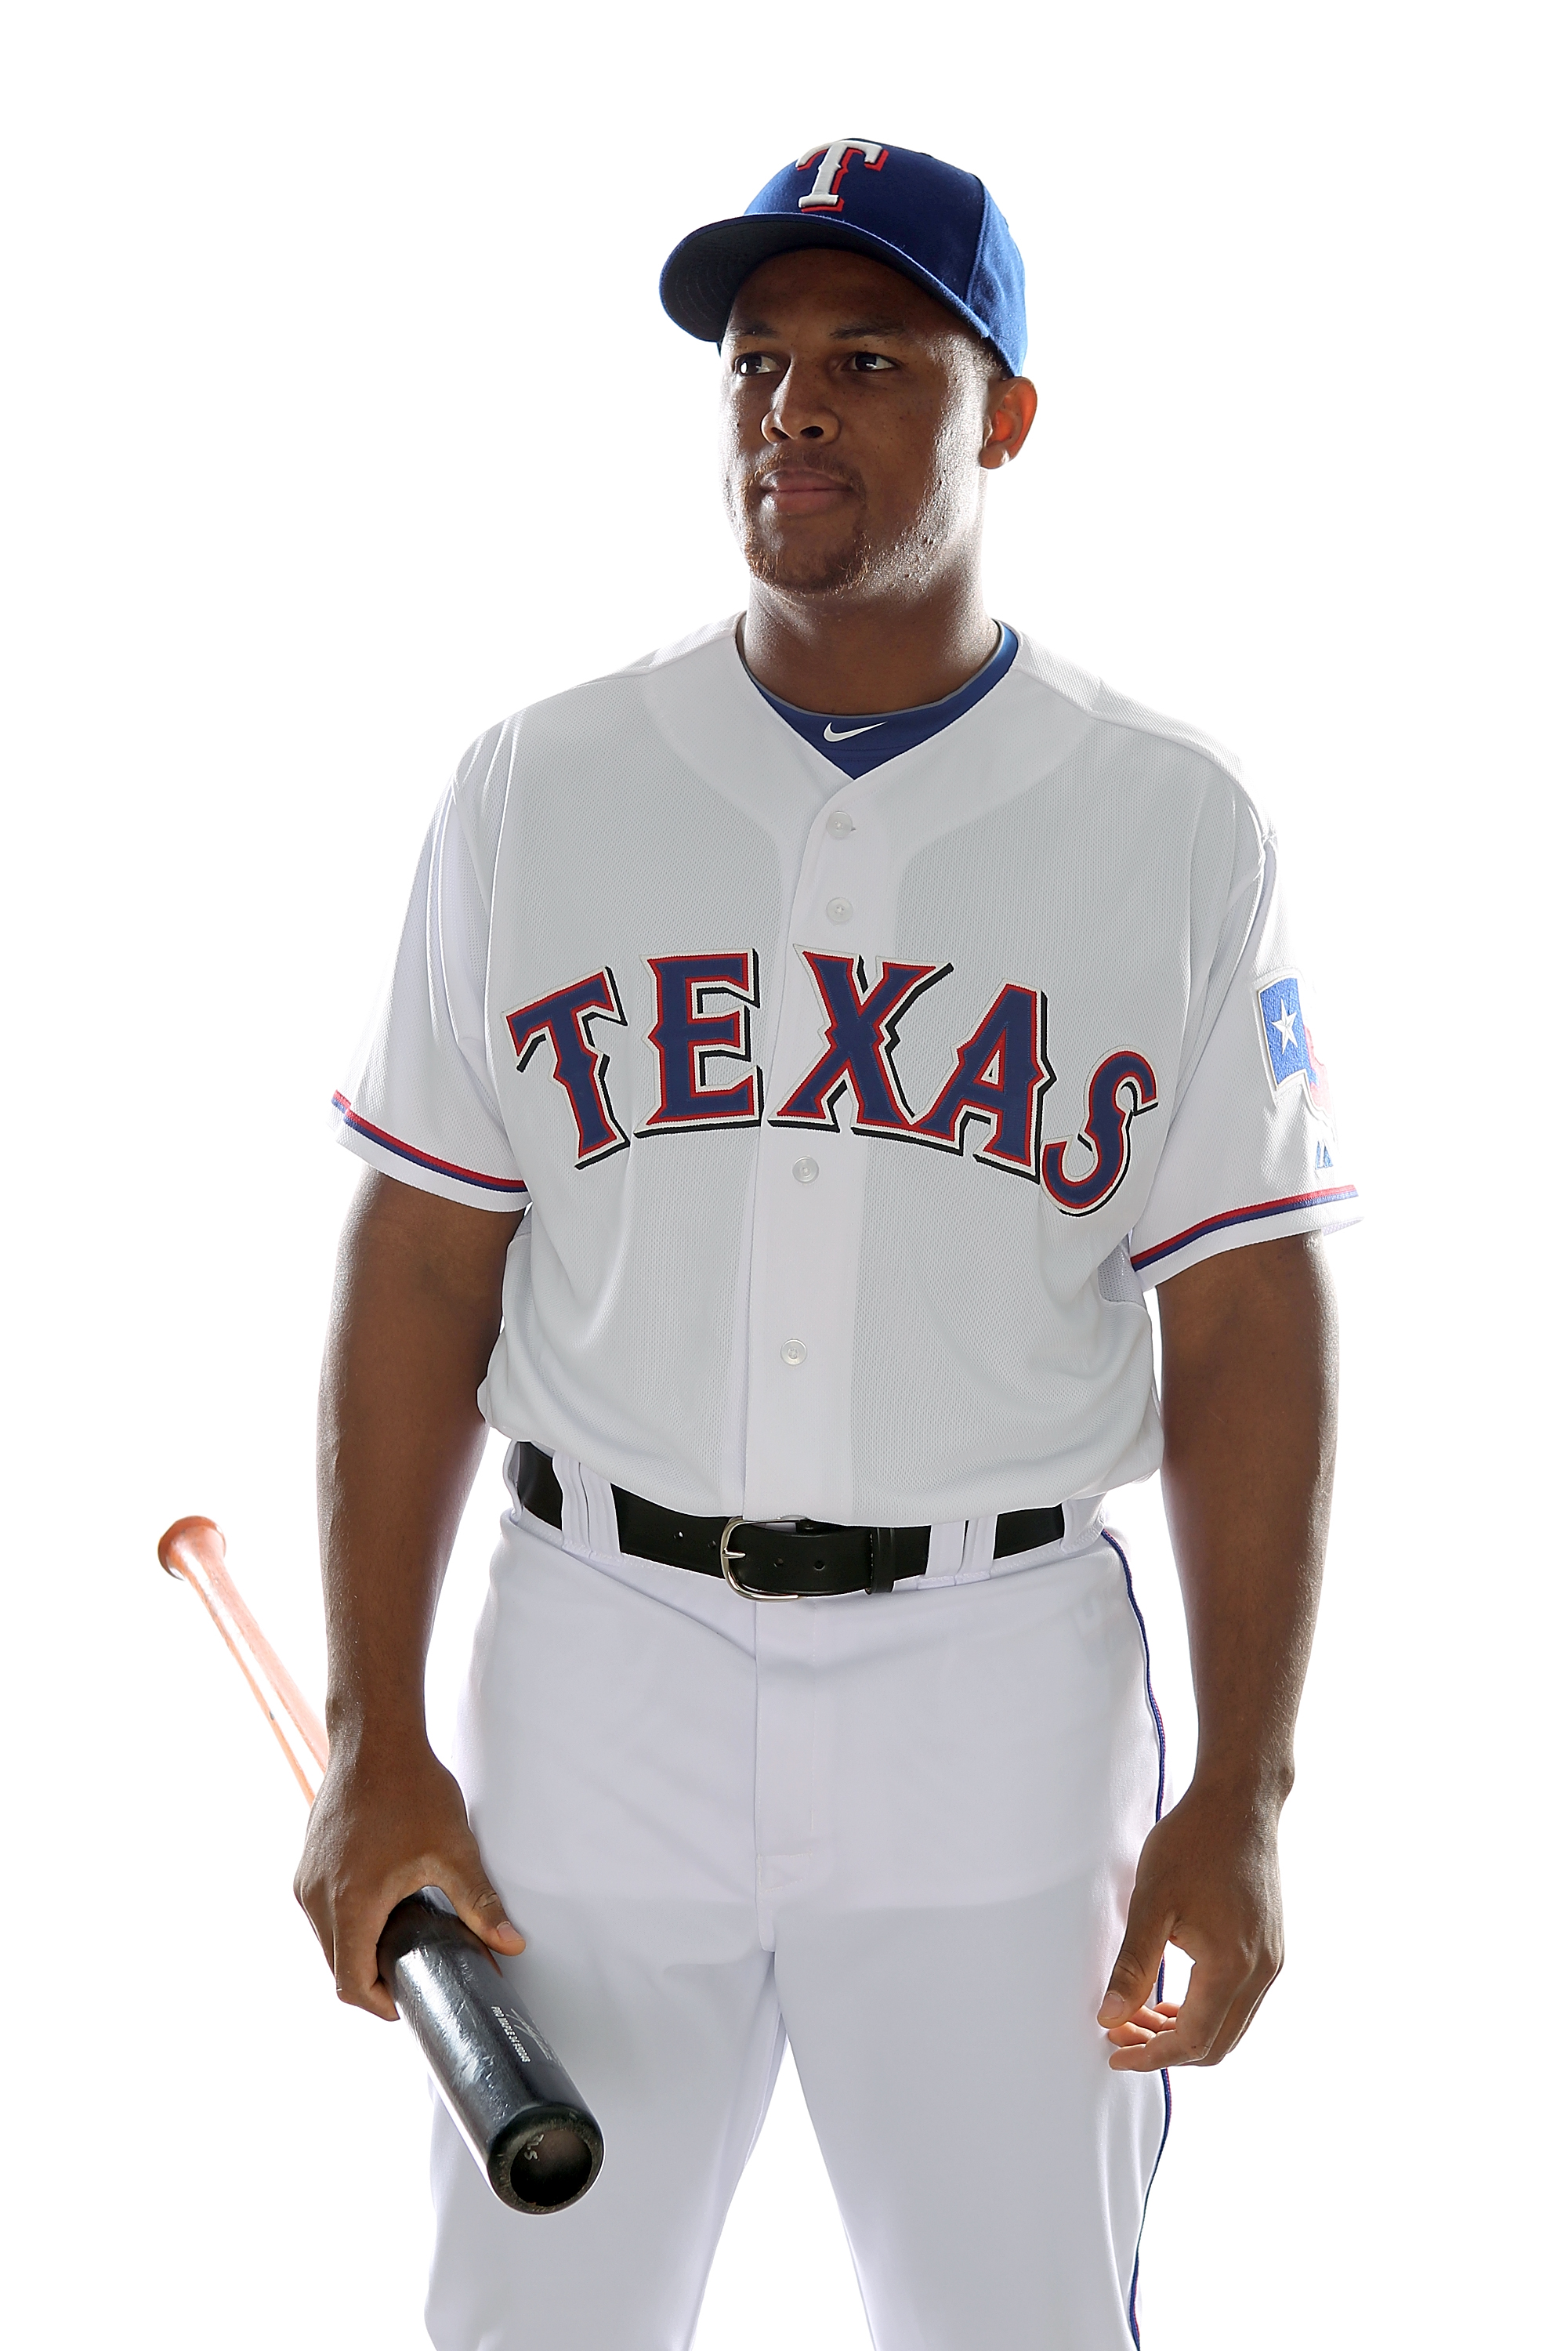 SURPRISE, AZ - FEBRUARY 25:  Adrian Beltre #29 of the Texas Rangers poses for a portrait during Spring Training Media Day on February 25, 2011 at Surprise Stadium in Surprise, Arizona.  (Photo by Jonathan Ferrey/Getty Images)